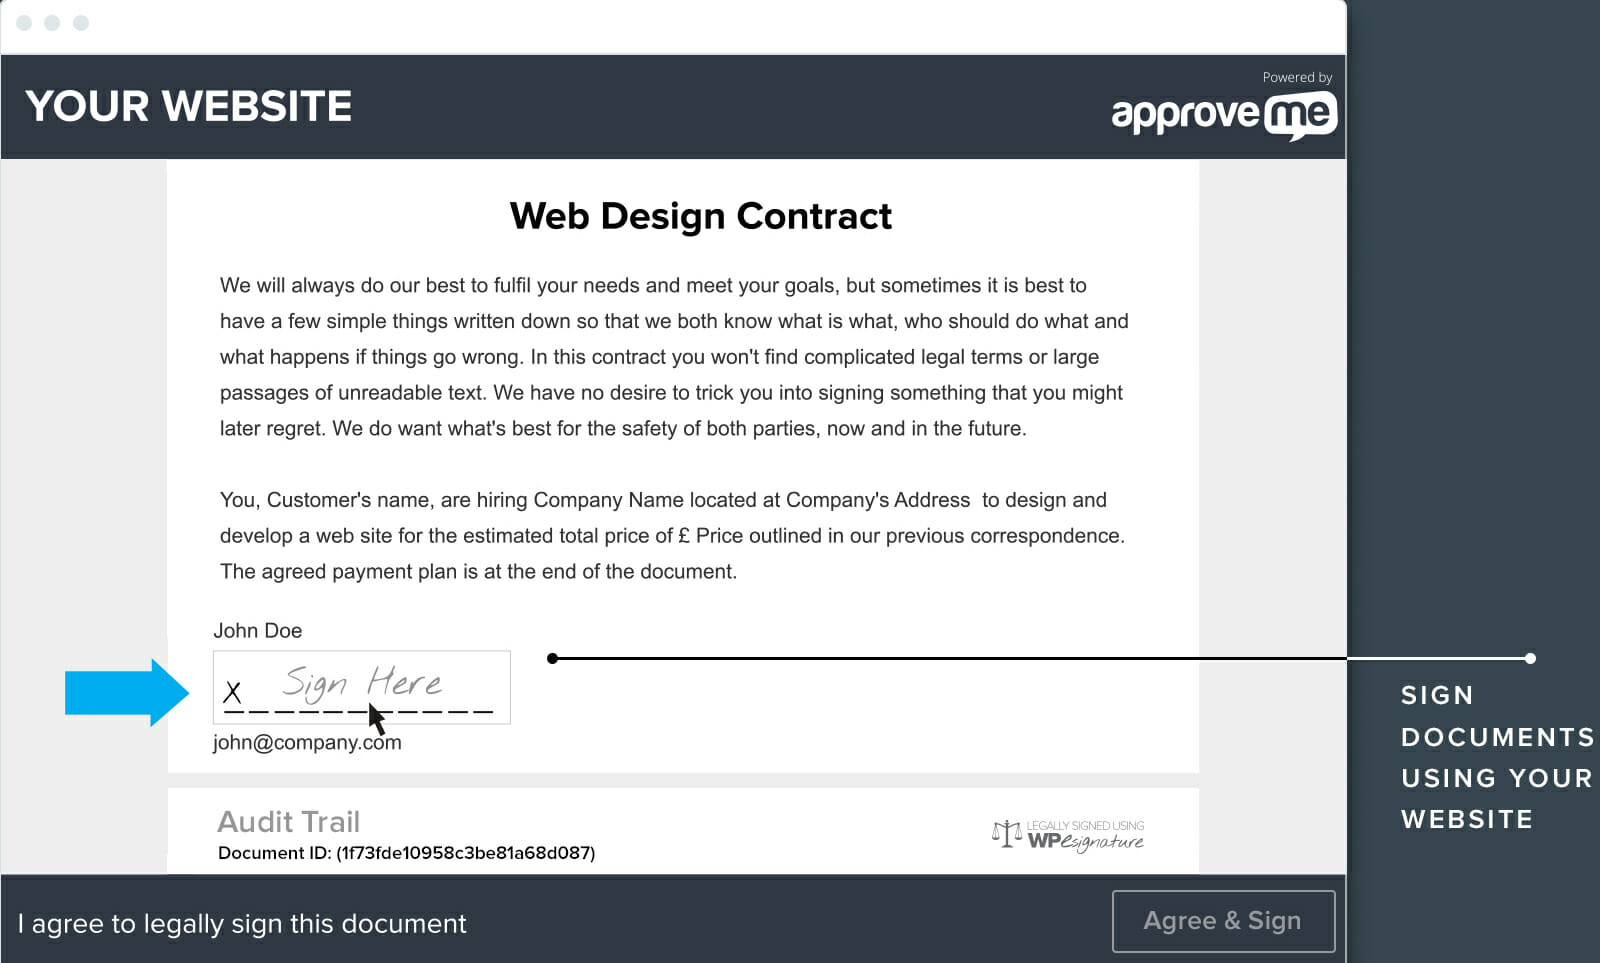 Legally Binding Digital Signatures With WP ESignature Sprout Invoices - Legally binding document